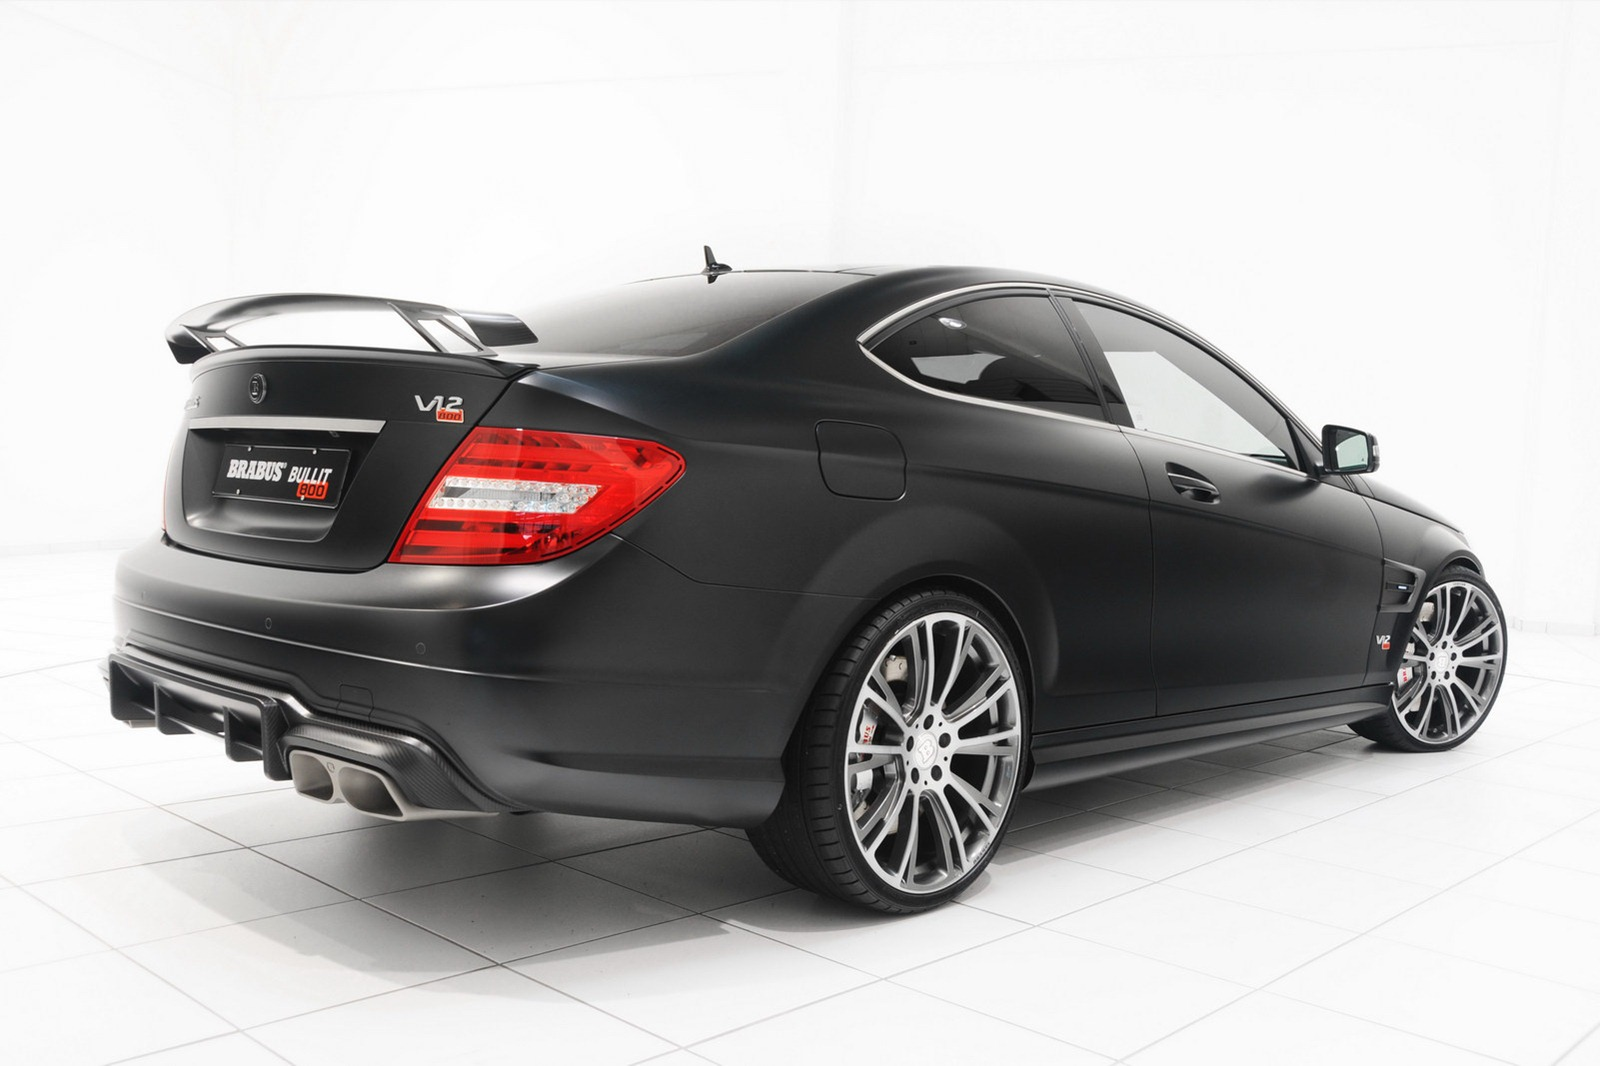 Brabus Bullit Coupe 800 Adds a V12 to the Mercedes C63 AMG Coupe